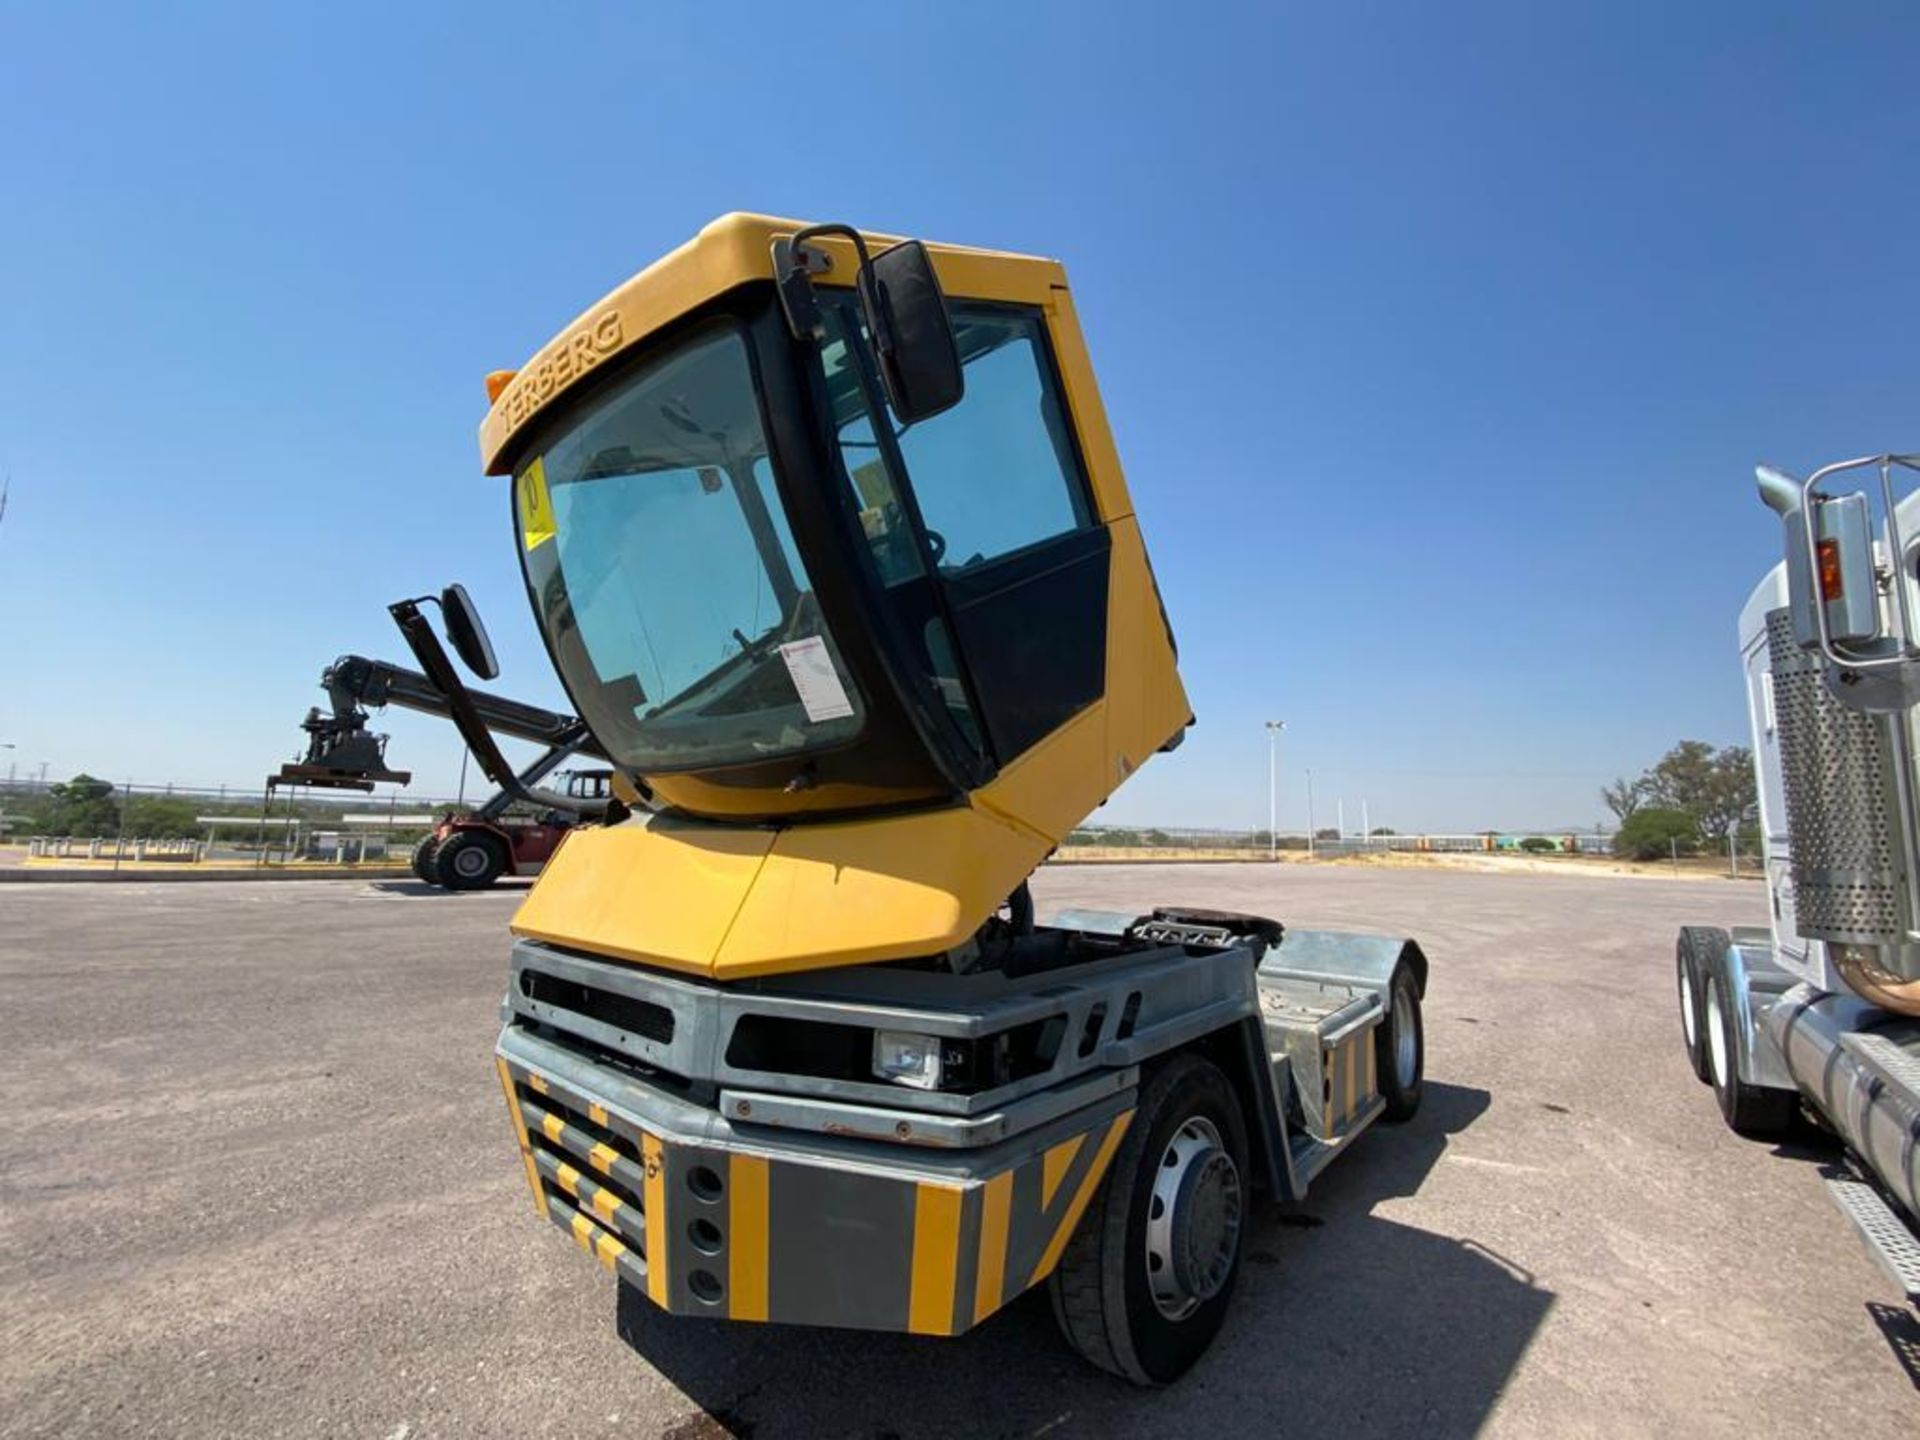 Terberg Capacity 2002 Terminal Tractor, automatic transmissio - Image 9 of 28